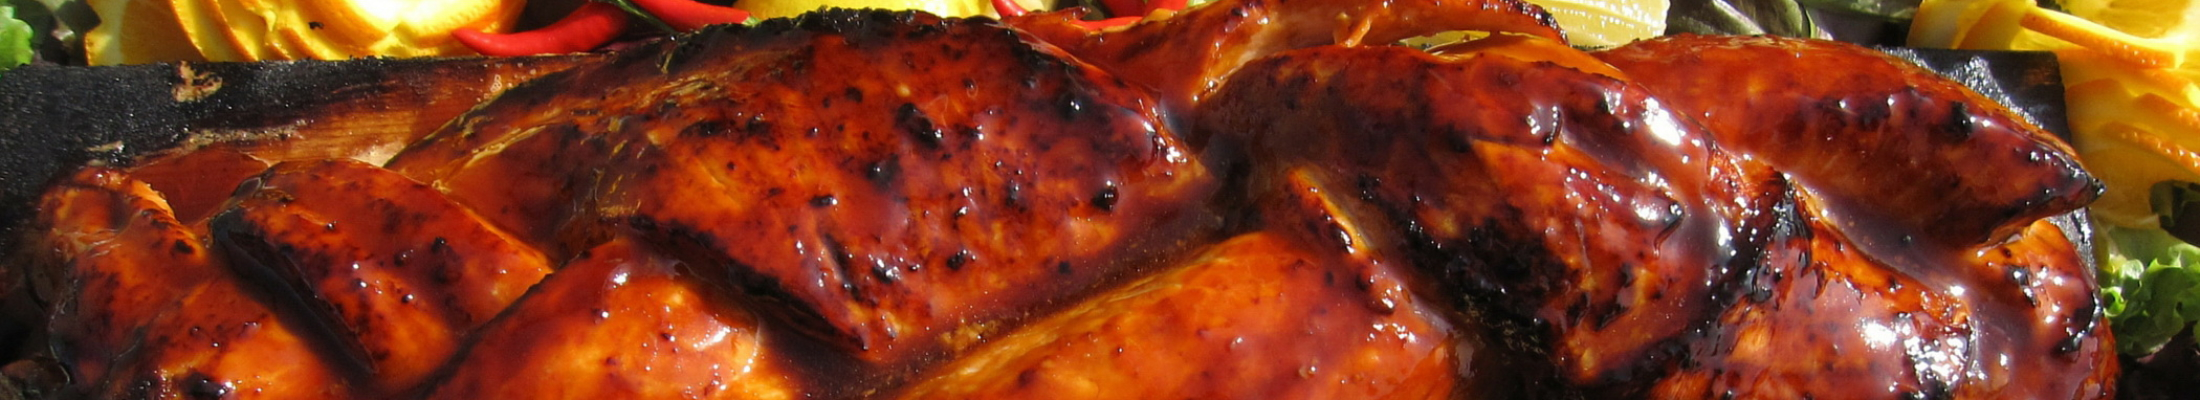 bbq catering toronto and mississauga feast your eyes